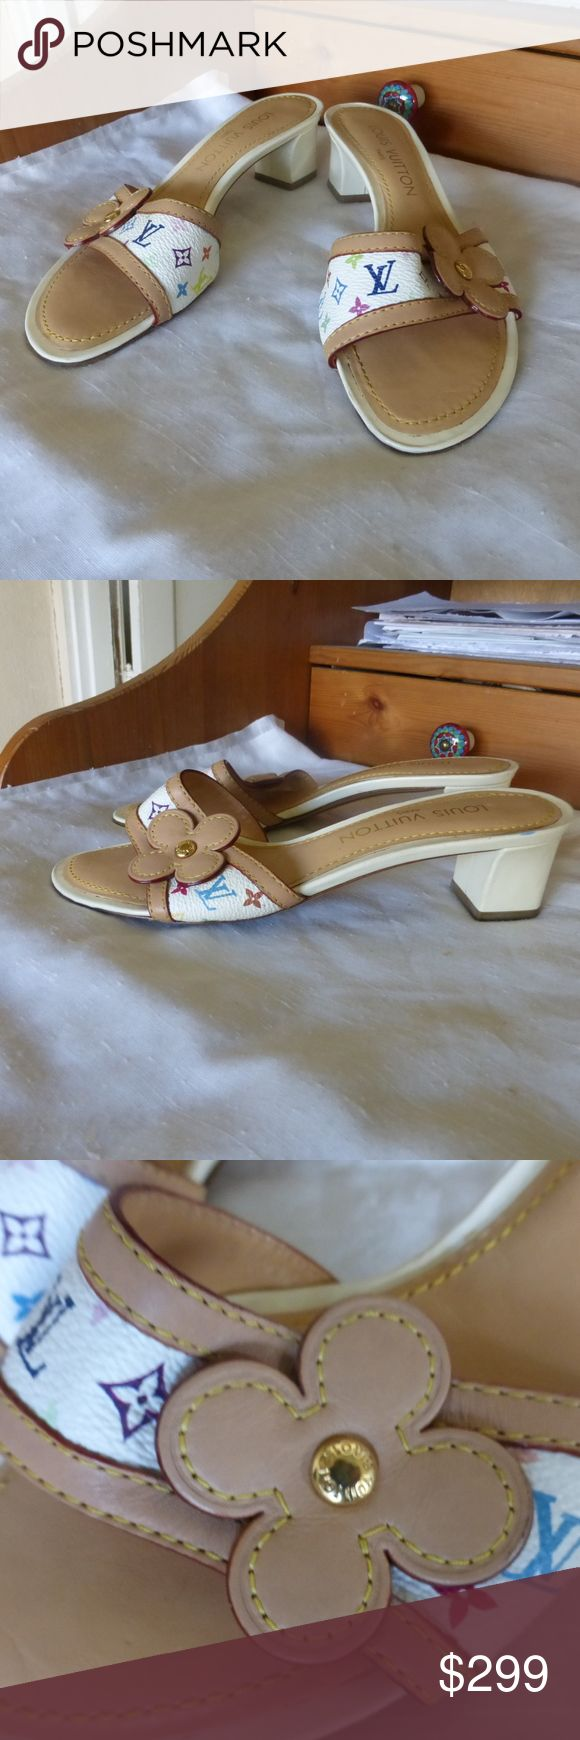 """LOUIS VUITTON MURAKAMI MULES SANDALS 36-6 ITALY CHANEL WHITE MURAKAMI LEATHER MULES SLIP-ON SANDALS.  SIZE 36 - 6. FITS A SIZE 6.  9.25"""" LONG FROM TIP TO TIP FOLLOWING CONTOUR.  2"""" HEEL HEIGHT. MADE ON ITALY. LOUIS VUITTON Shoes Mules & Clogs"""